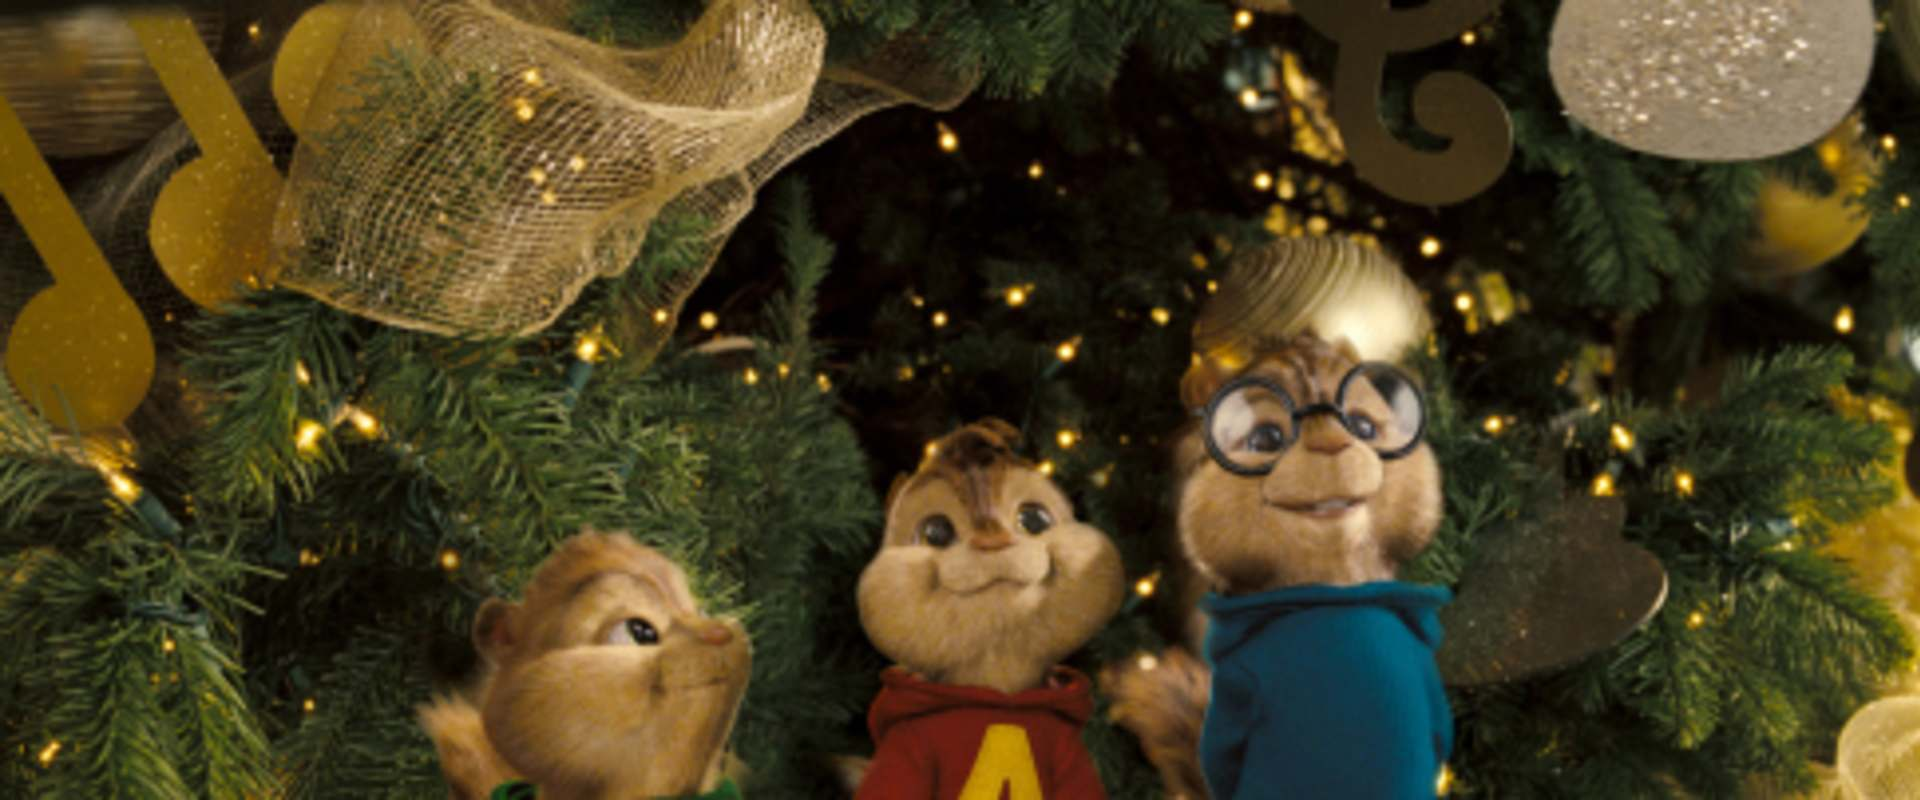 Alvin and the Chipmunks background 2